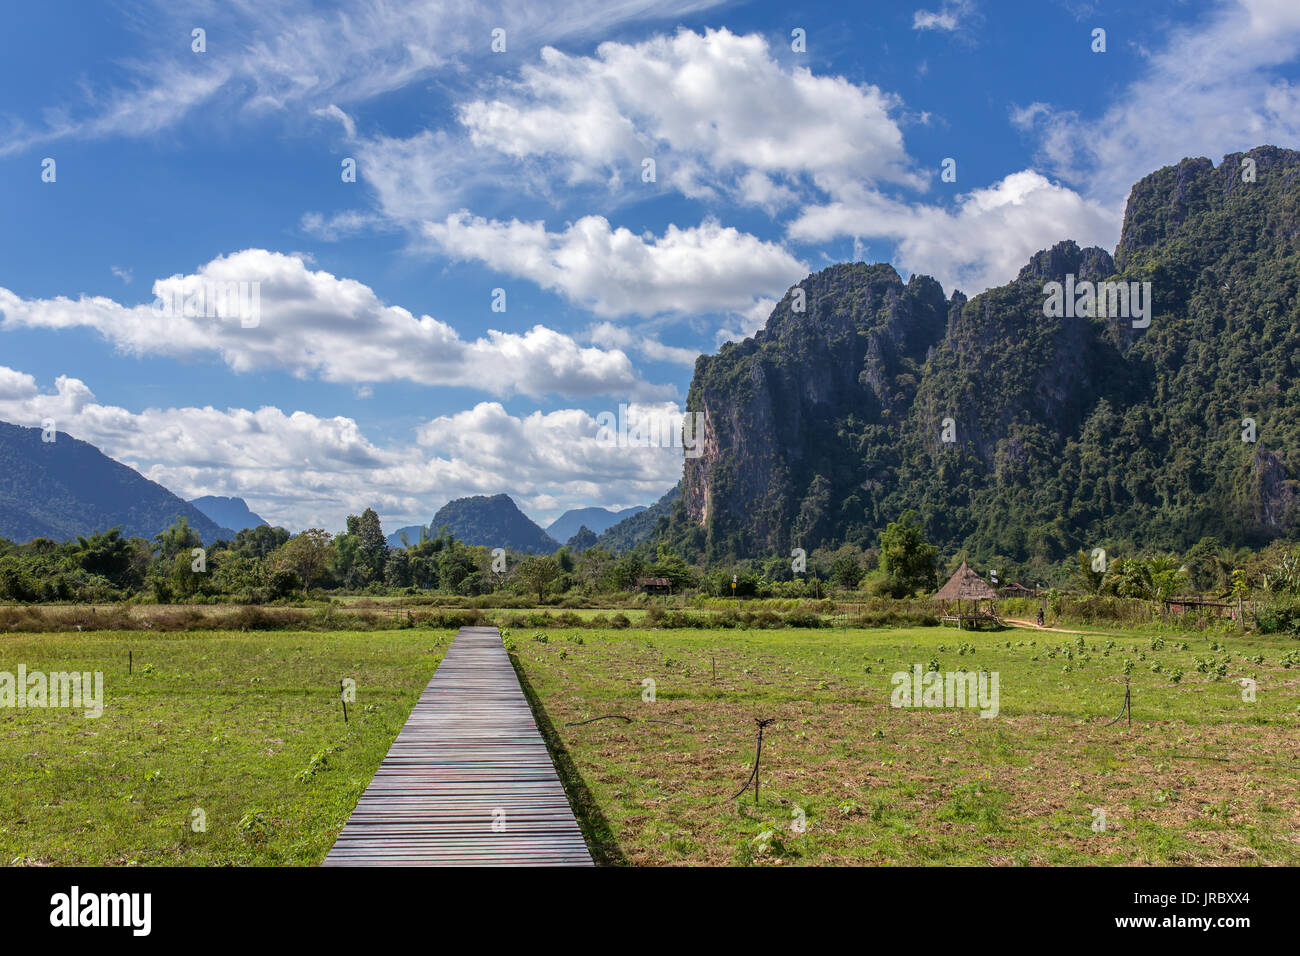 Wood bridge and paddy field rice in Vang Vieng, Laos - Stock Image